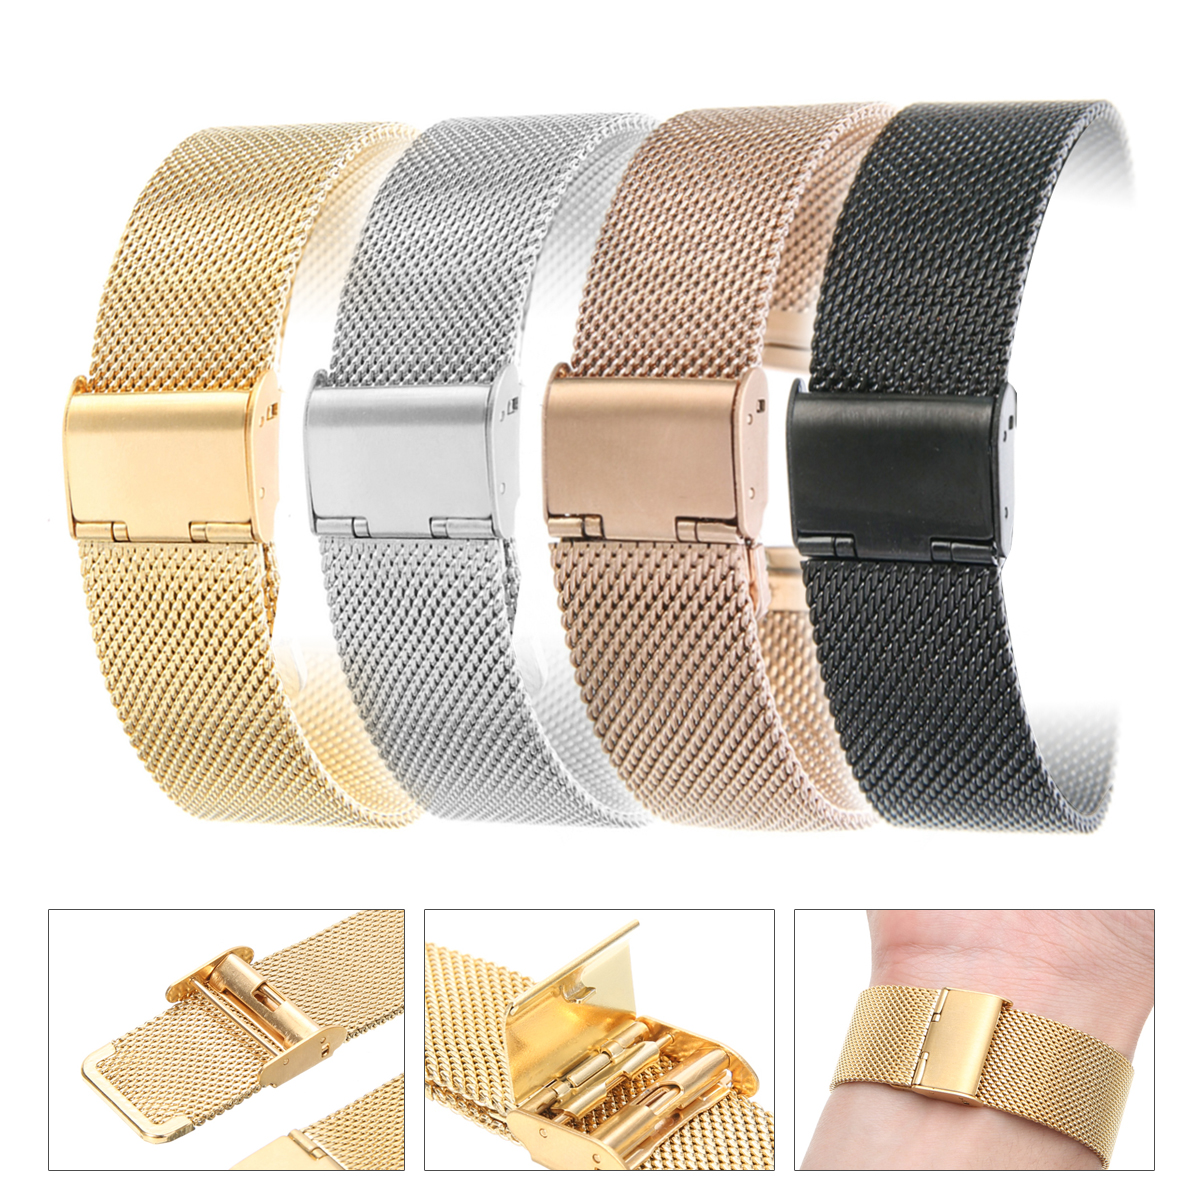 Shellhard 12mm/14mm/16mm/18mm/20mm/22mm/24mm Stainless Steel Watch Strap 4 Colors Straight End Mesh Buckle Watch Band Strap new watch band 14mm 16mm 18mm 20mm 22mm 24mm 26mm black stainless steel watch band strap straight end bracelet